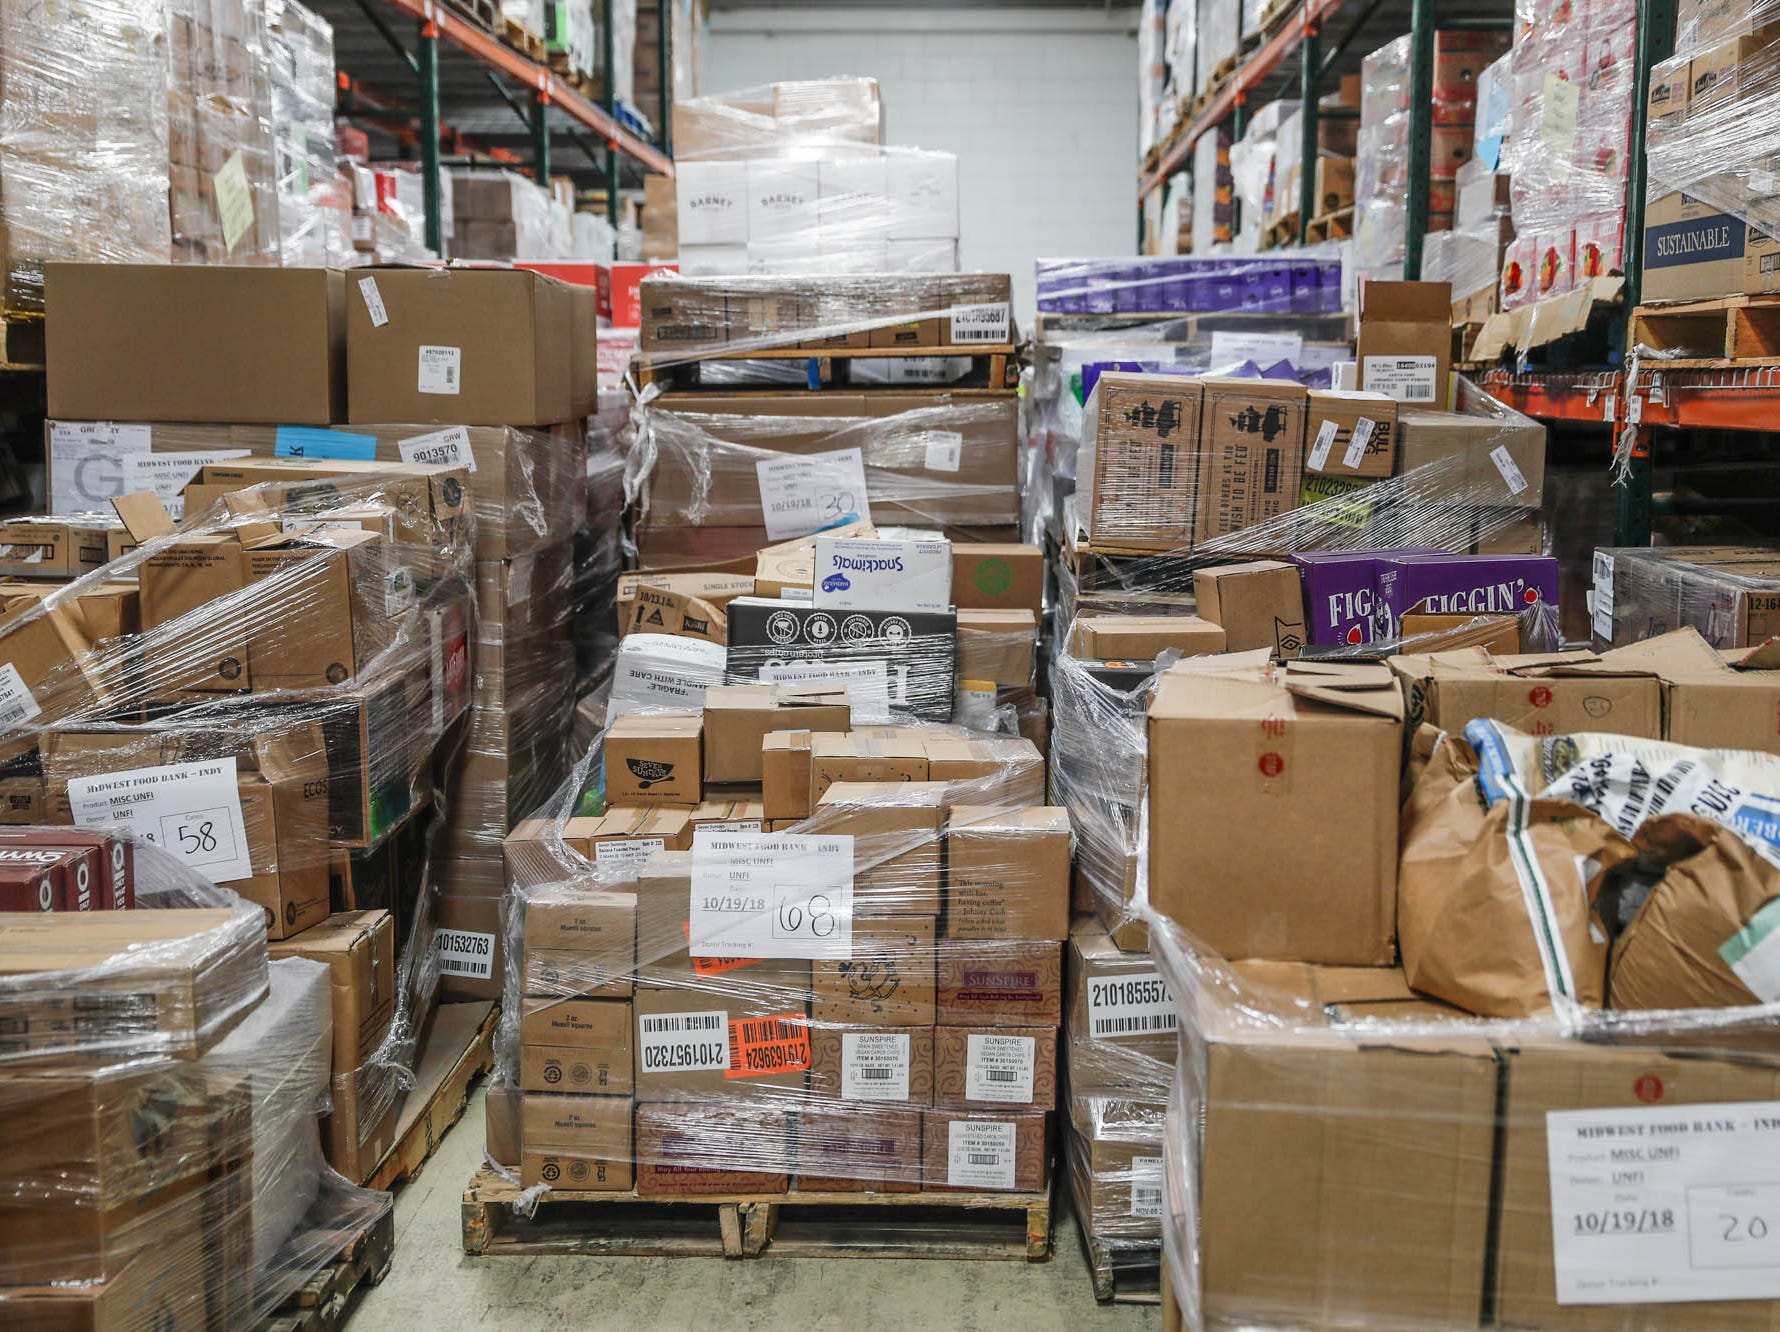 Food stuffs are stacked and sorted at the Midwest Food Bank after a press conference announcing the expansion of the Food Drop program, which partnered with Indiana's largest hunger relief agencies to make it easier for truck drivers to donate store-rejected food on Tuesday, Oct. 23, 2018.